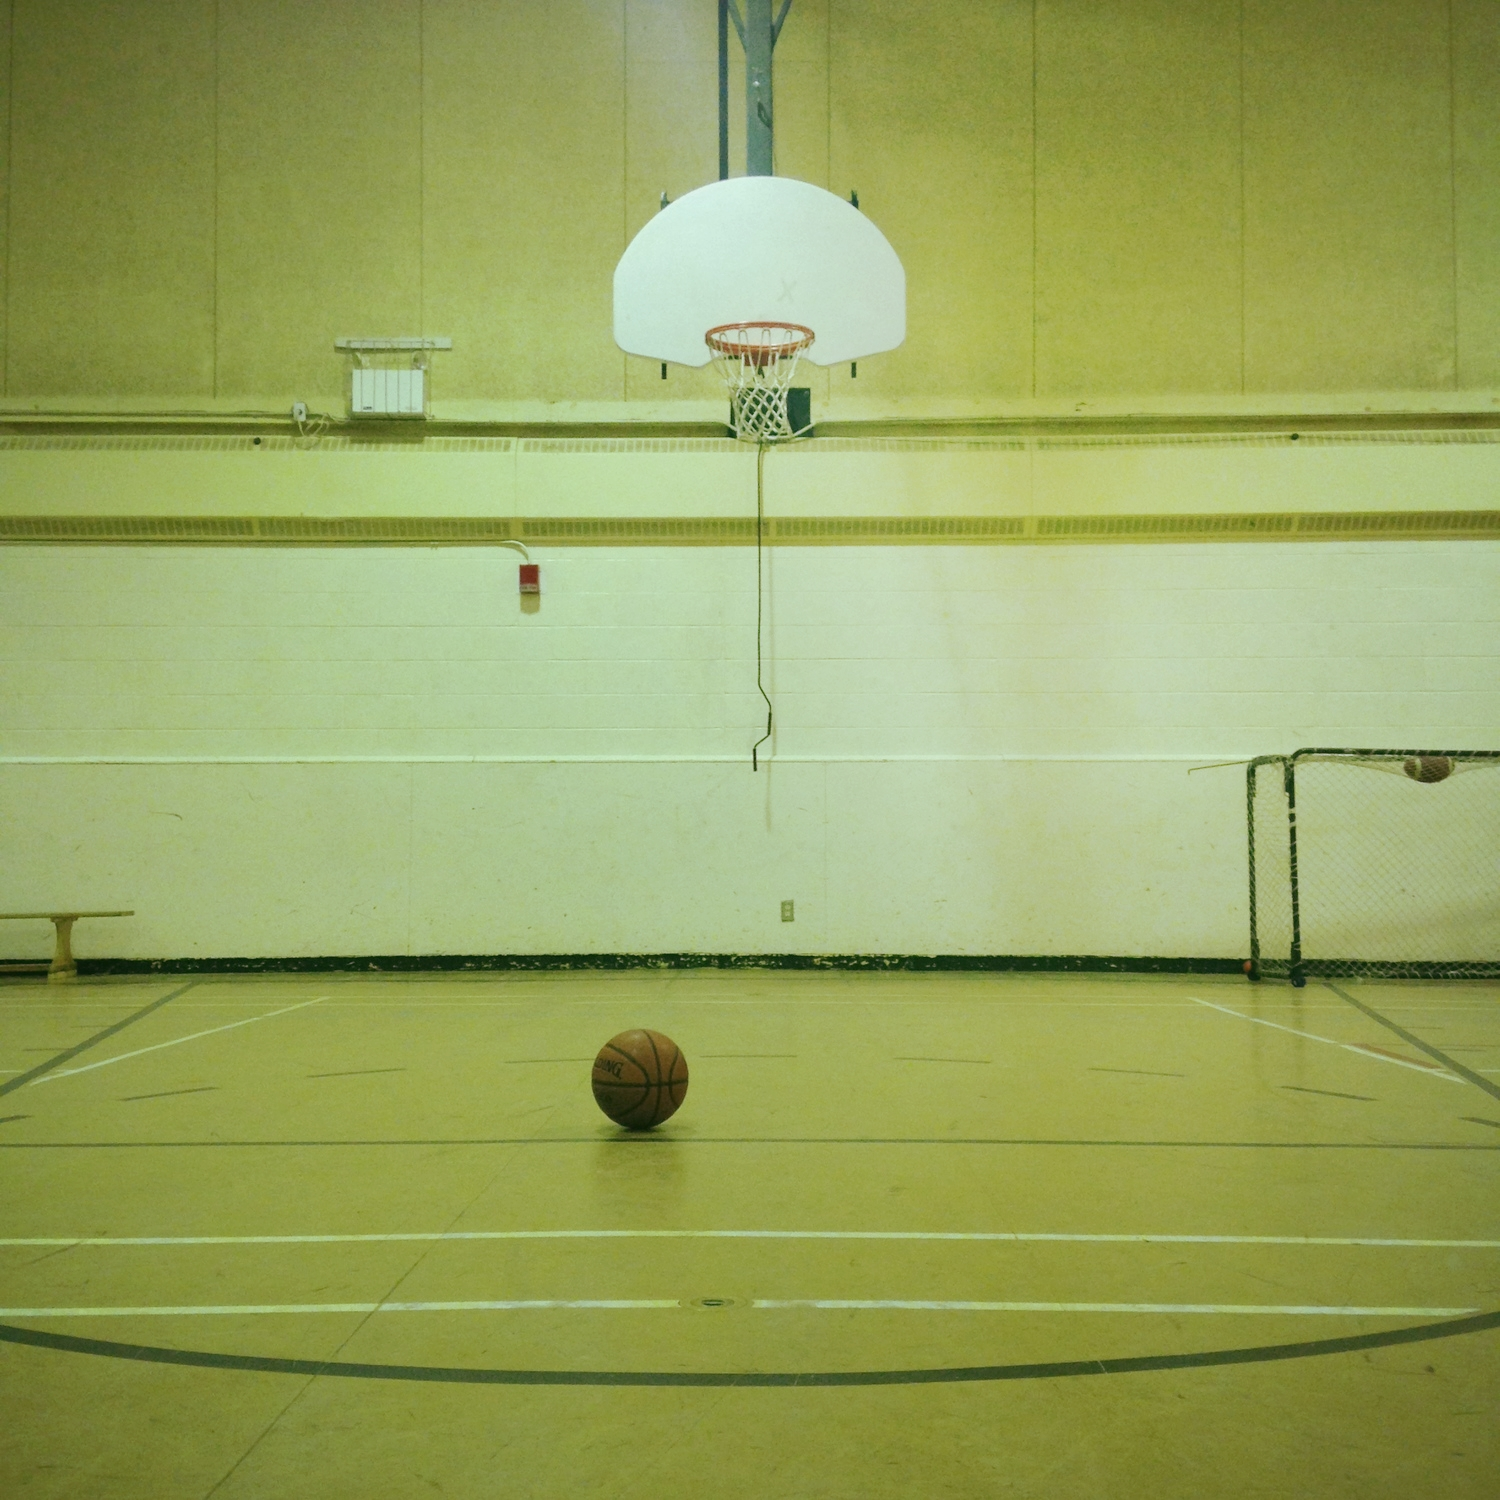 Shot some hoops.